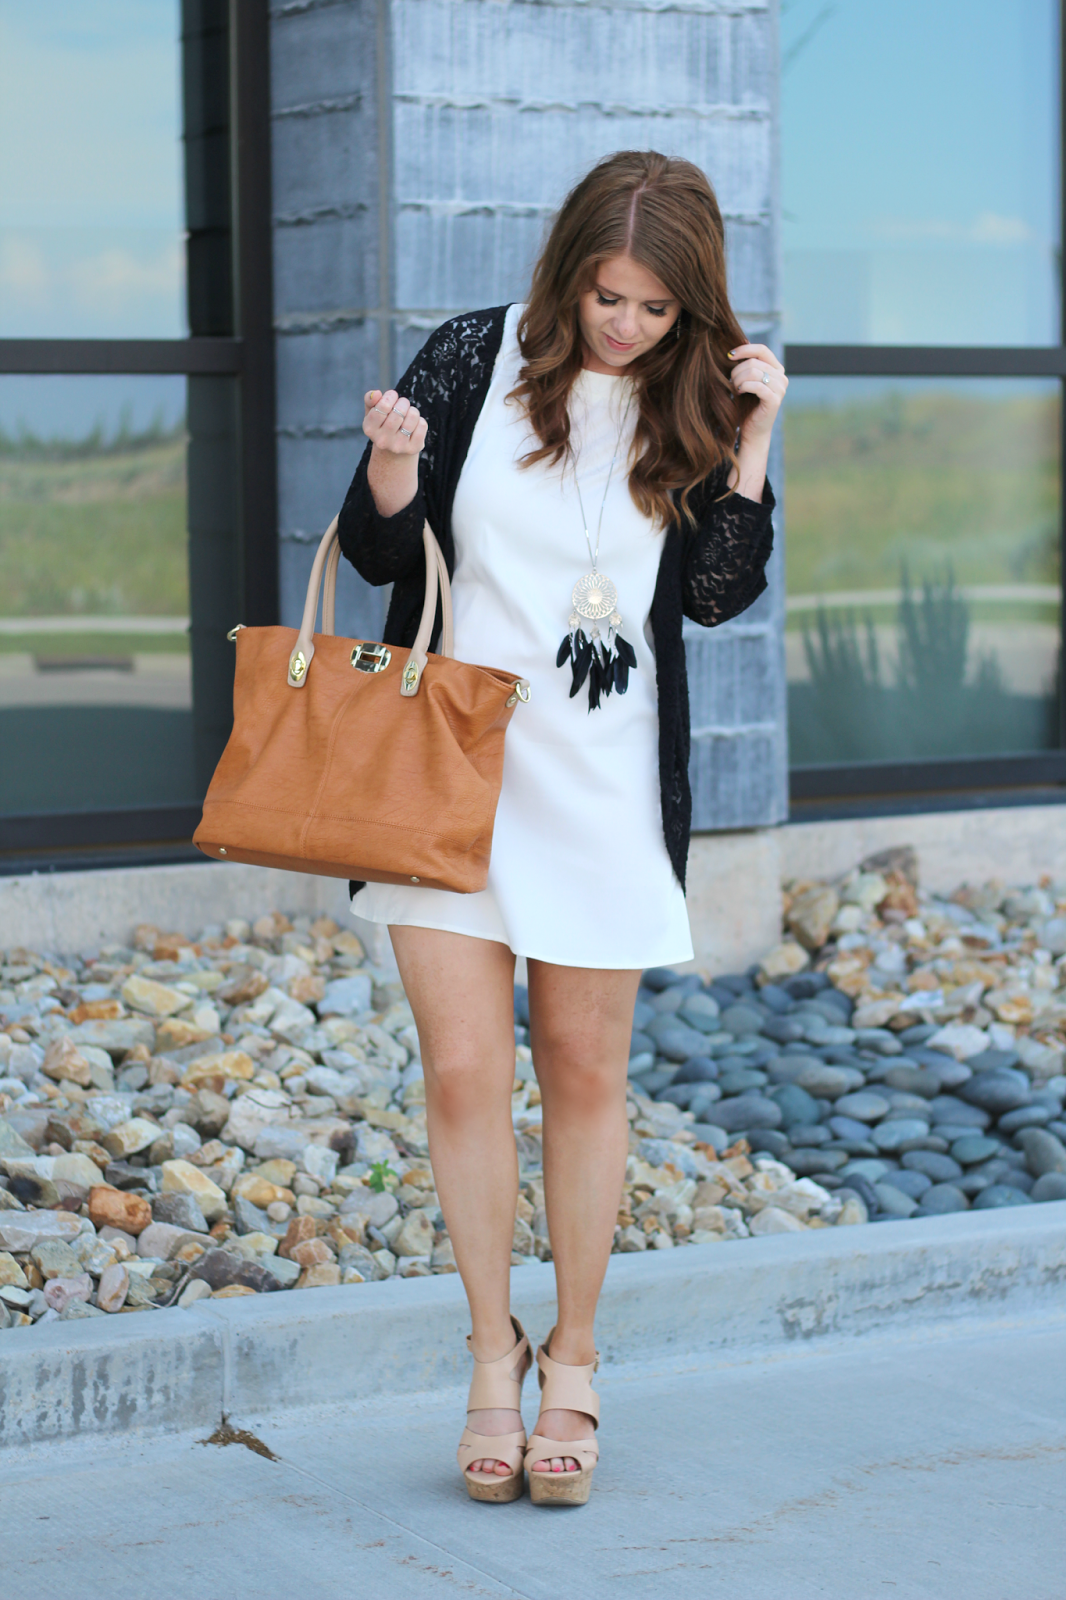 White Dress Black Lace Modest summer outfit